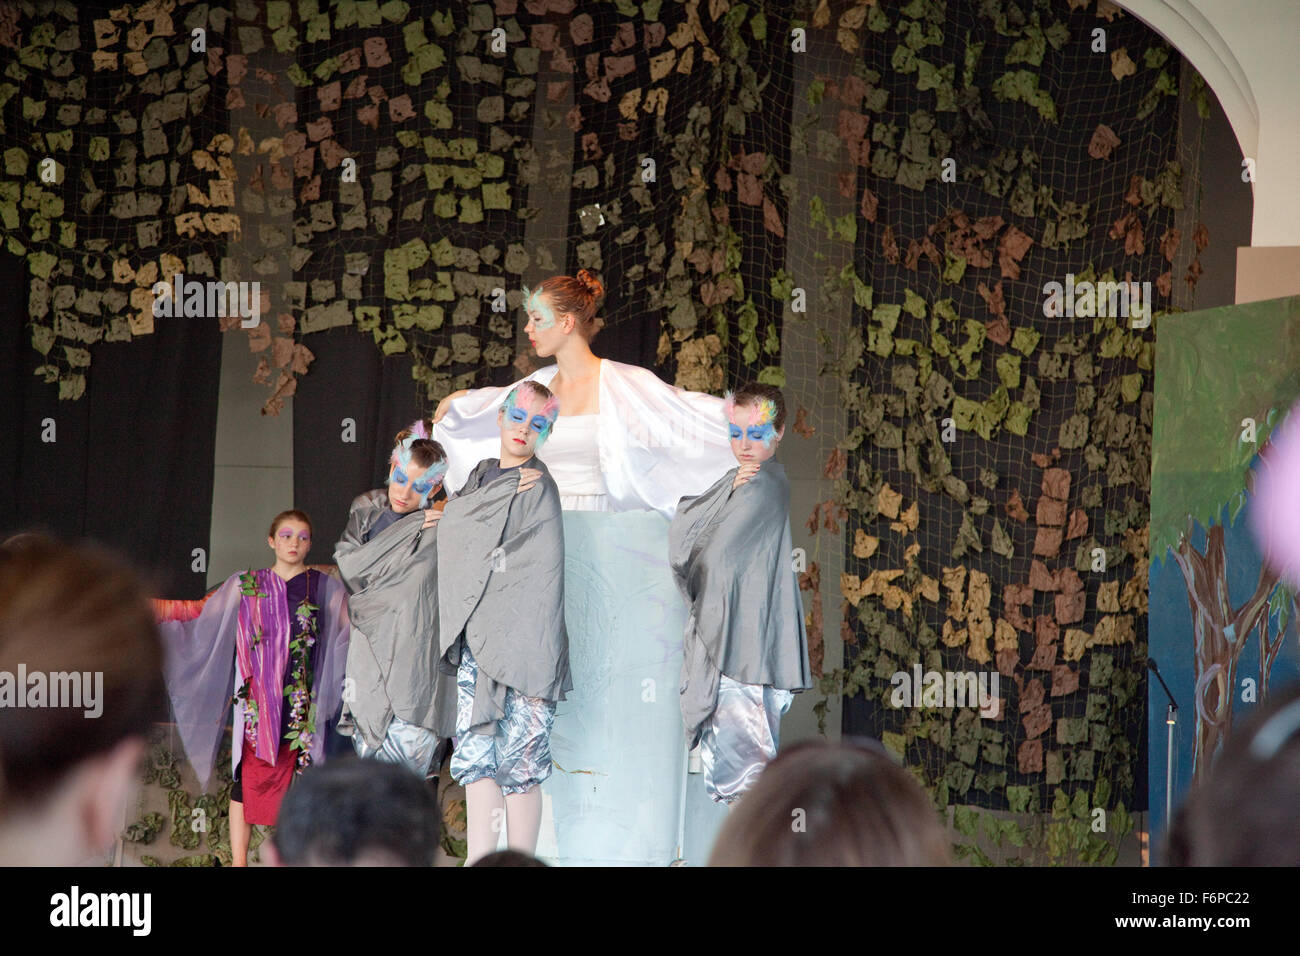 Actors on stage for Into the Woods theatrical play. St Paul Minnesota MN USA - Stock Image